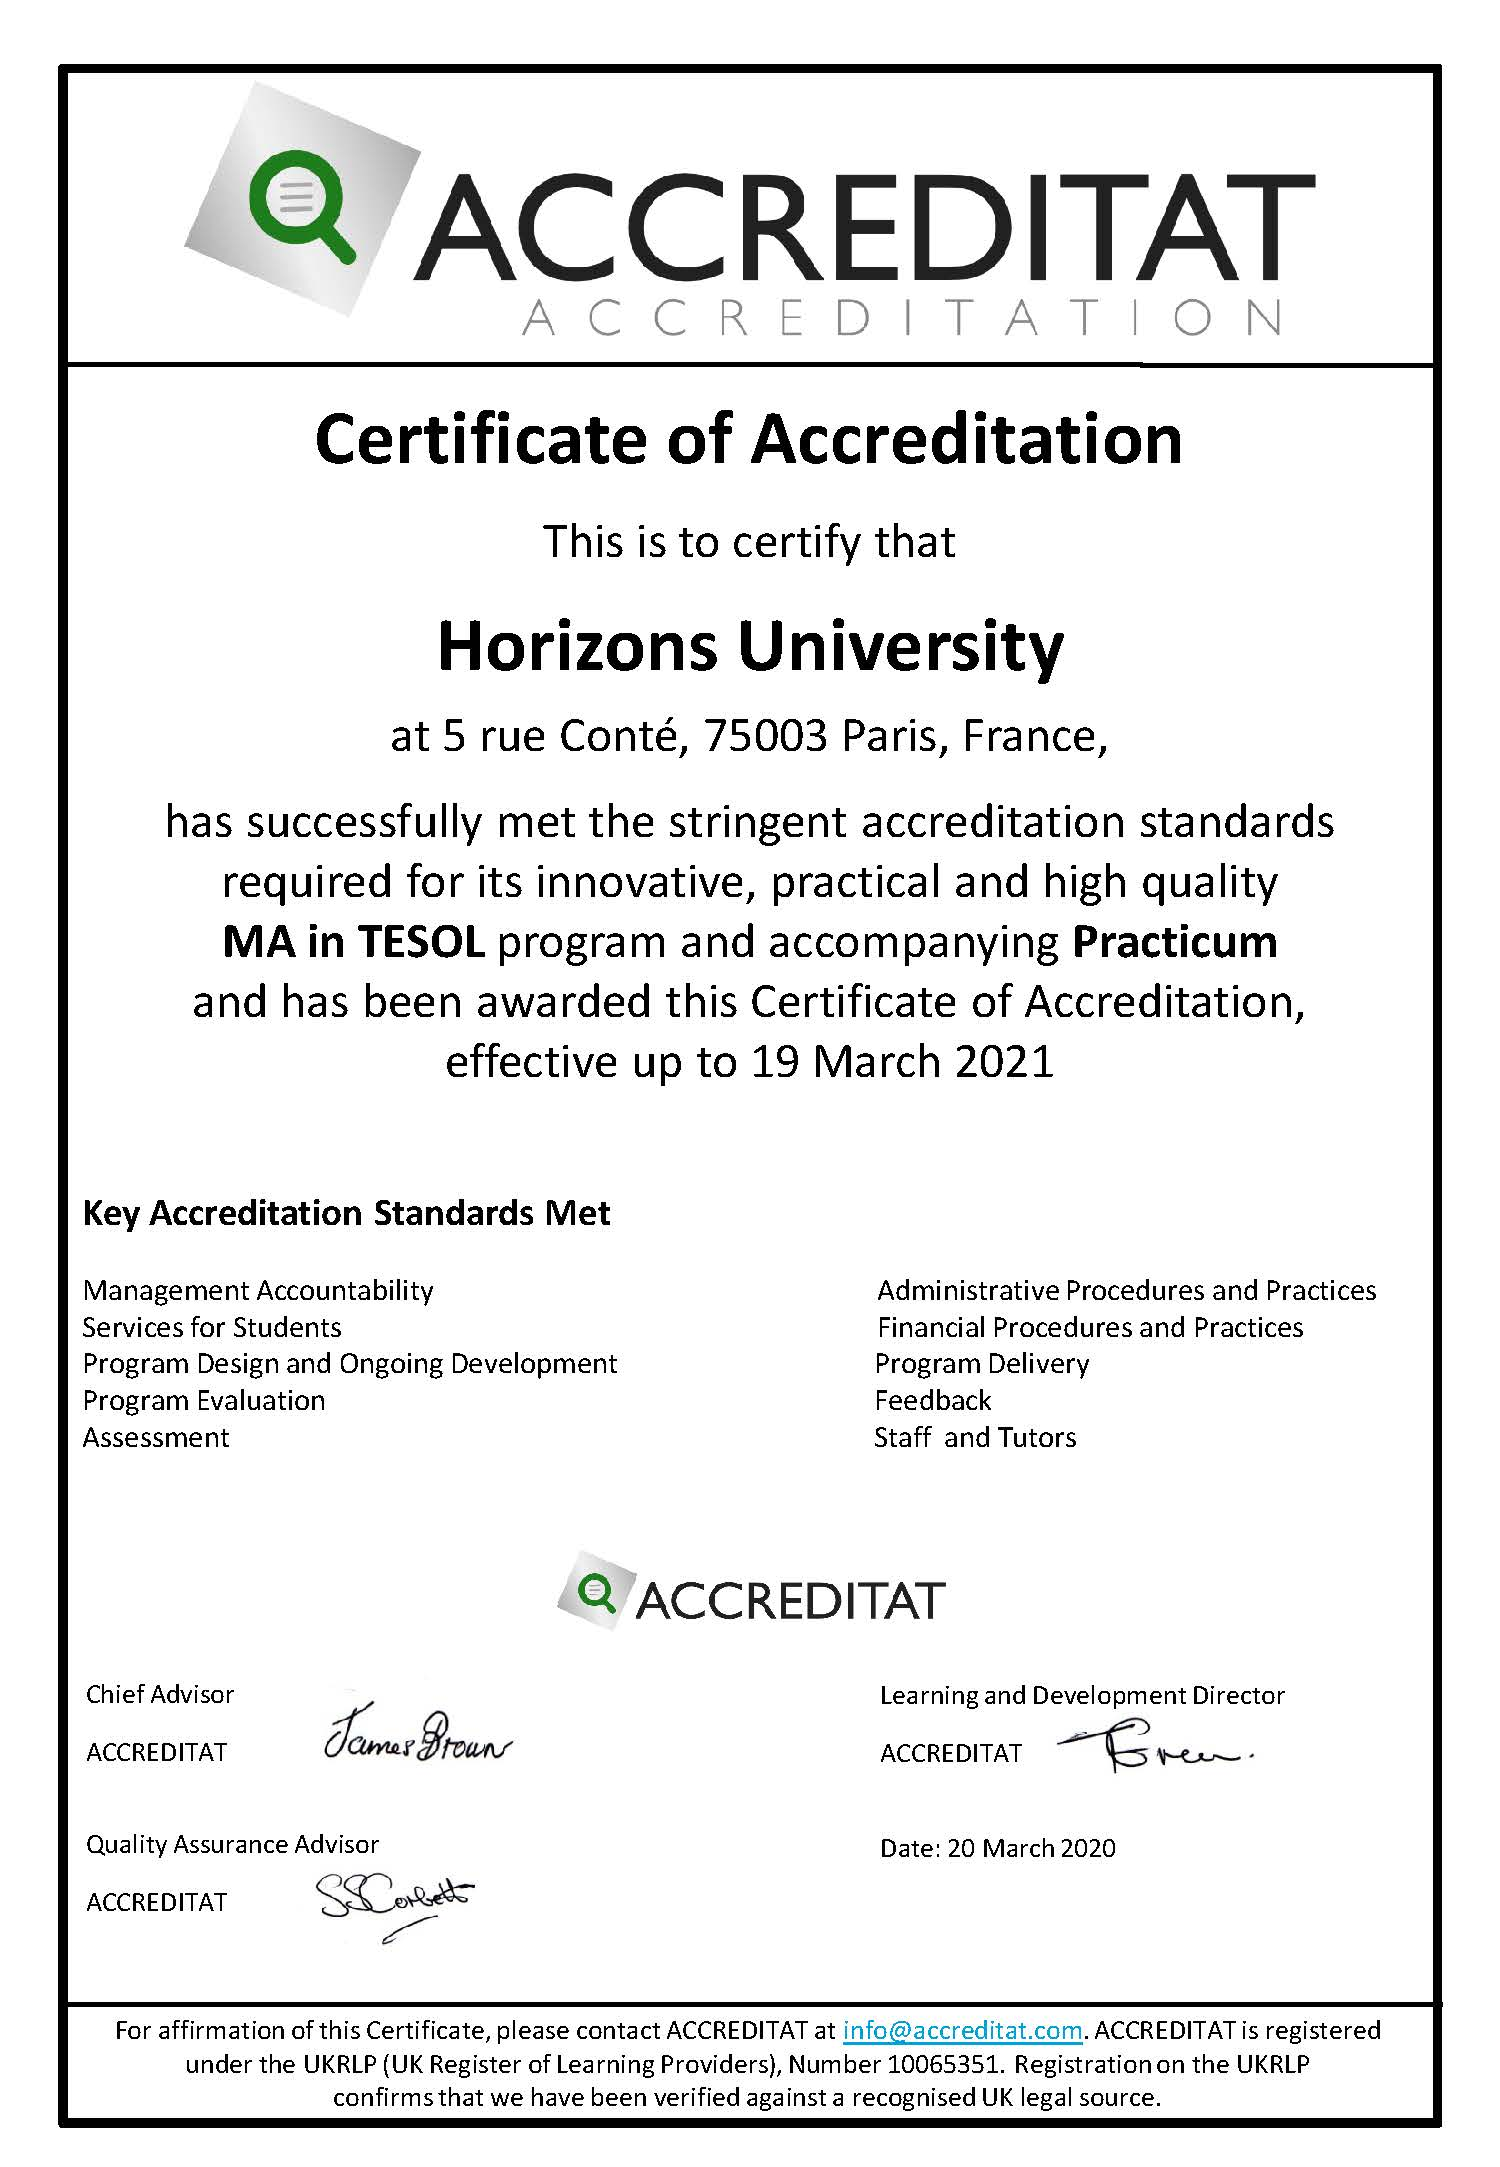 MA in TESOL accredited!